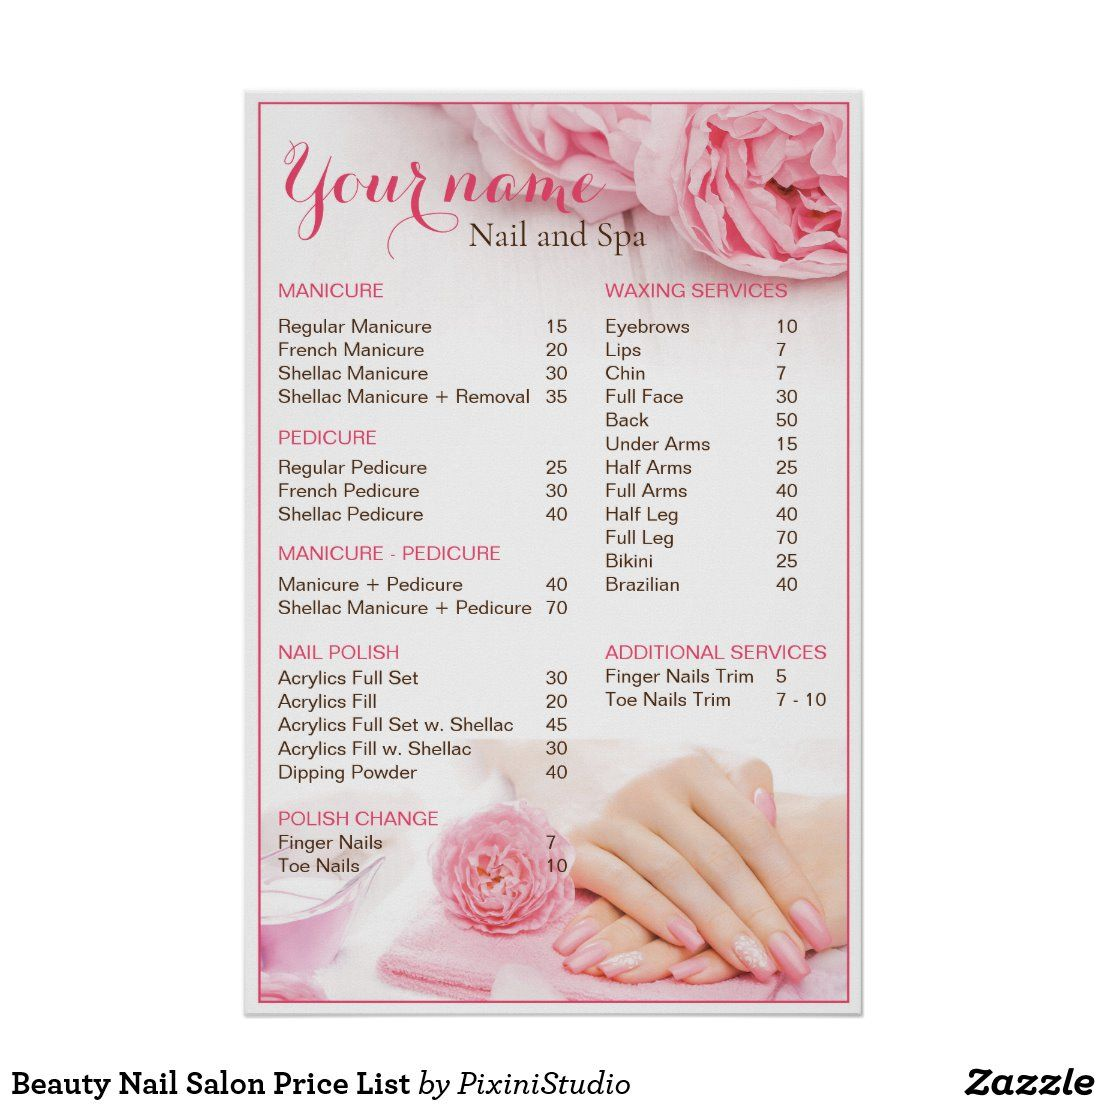 Beauty Nail Salon Price List Poster Zazzle Com In 2020 With